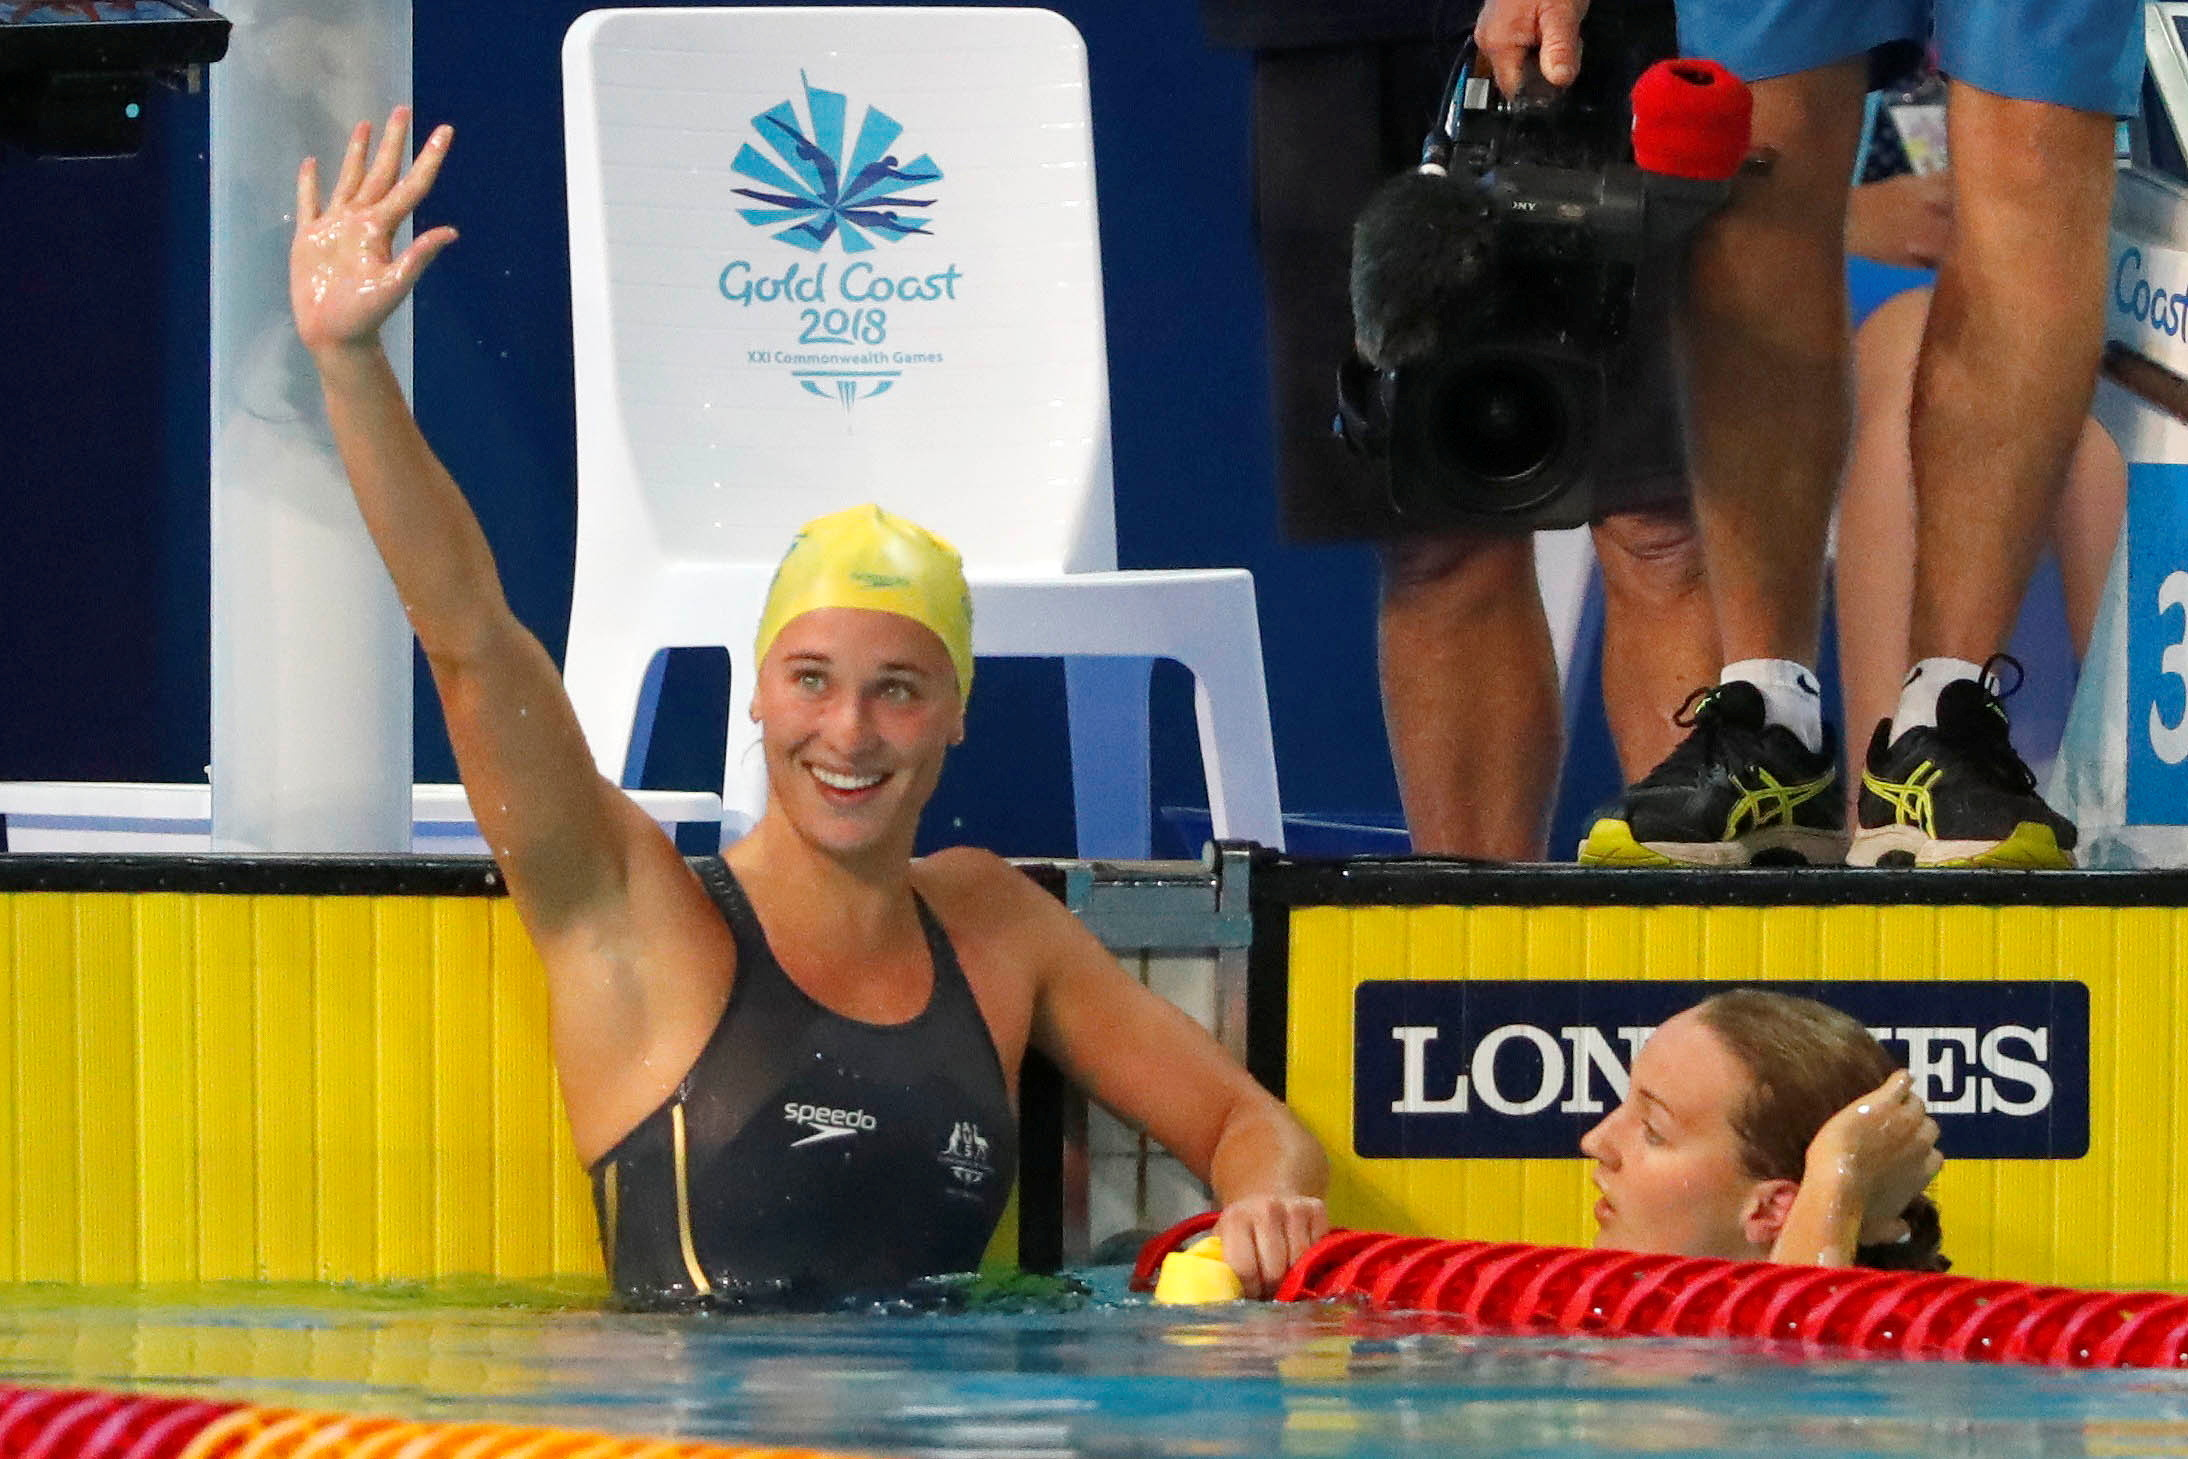 Swimming - Gold Coast 2018 Commonwealth Games - Women's 100m Butterfly Semifinal - Optus Aquatic Centre - Gold Coast, Australia - April 5, 2018. Madeline Groves of Australia reacts after winning a heat. REUTERS/David Gray/File Photo